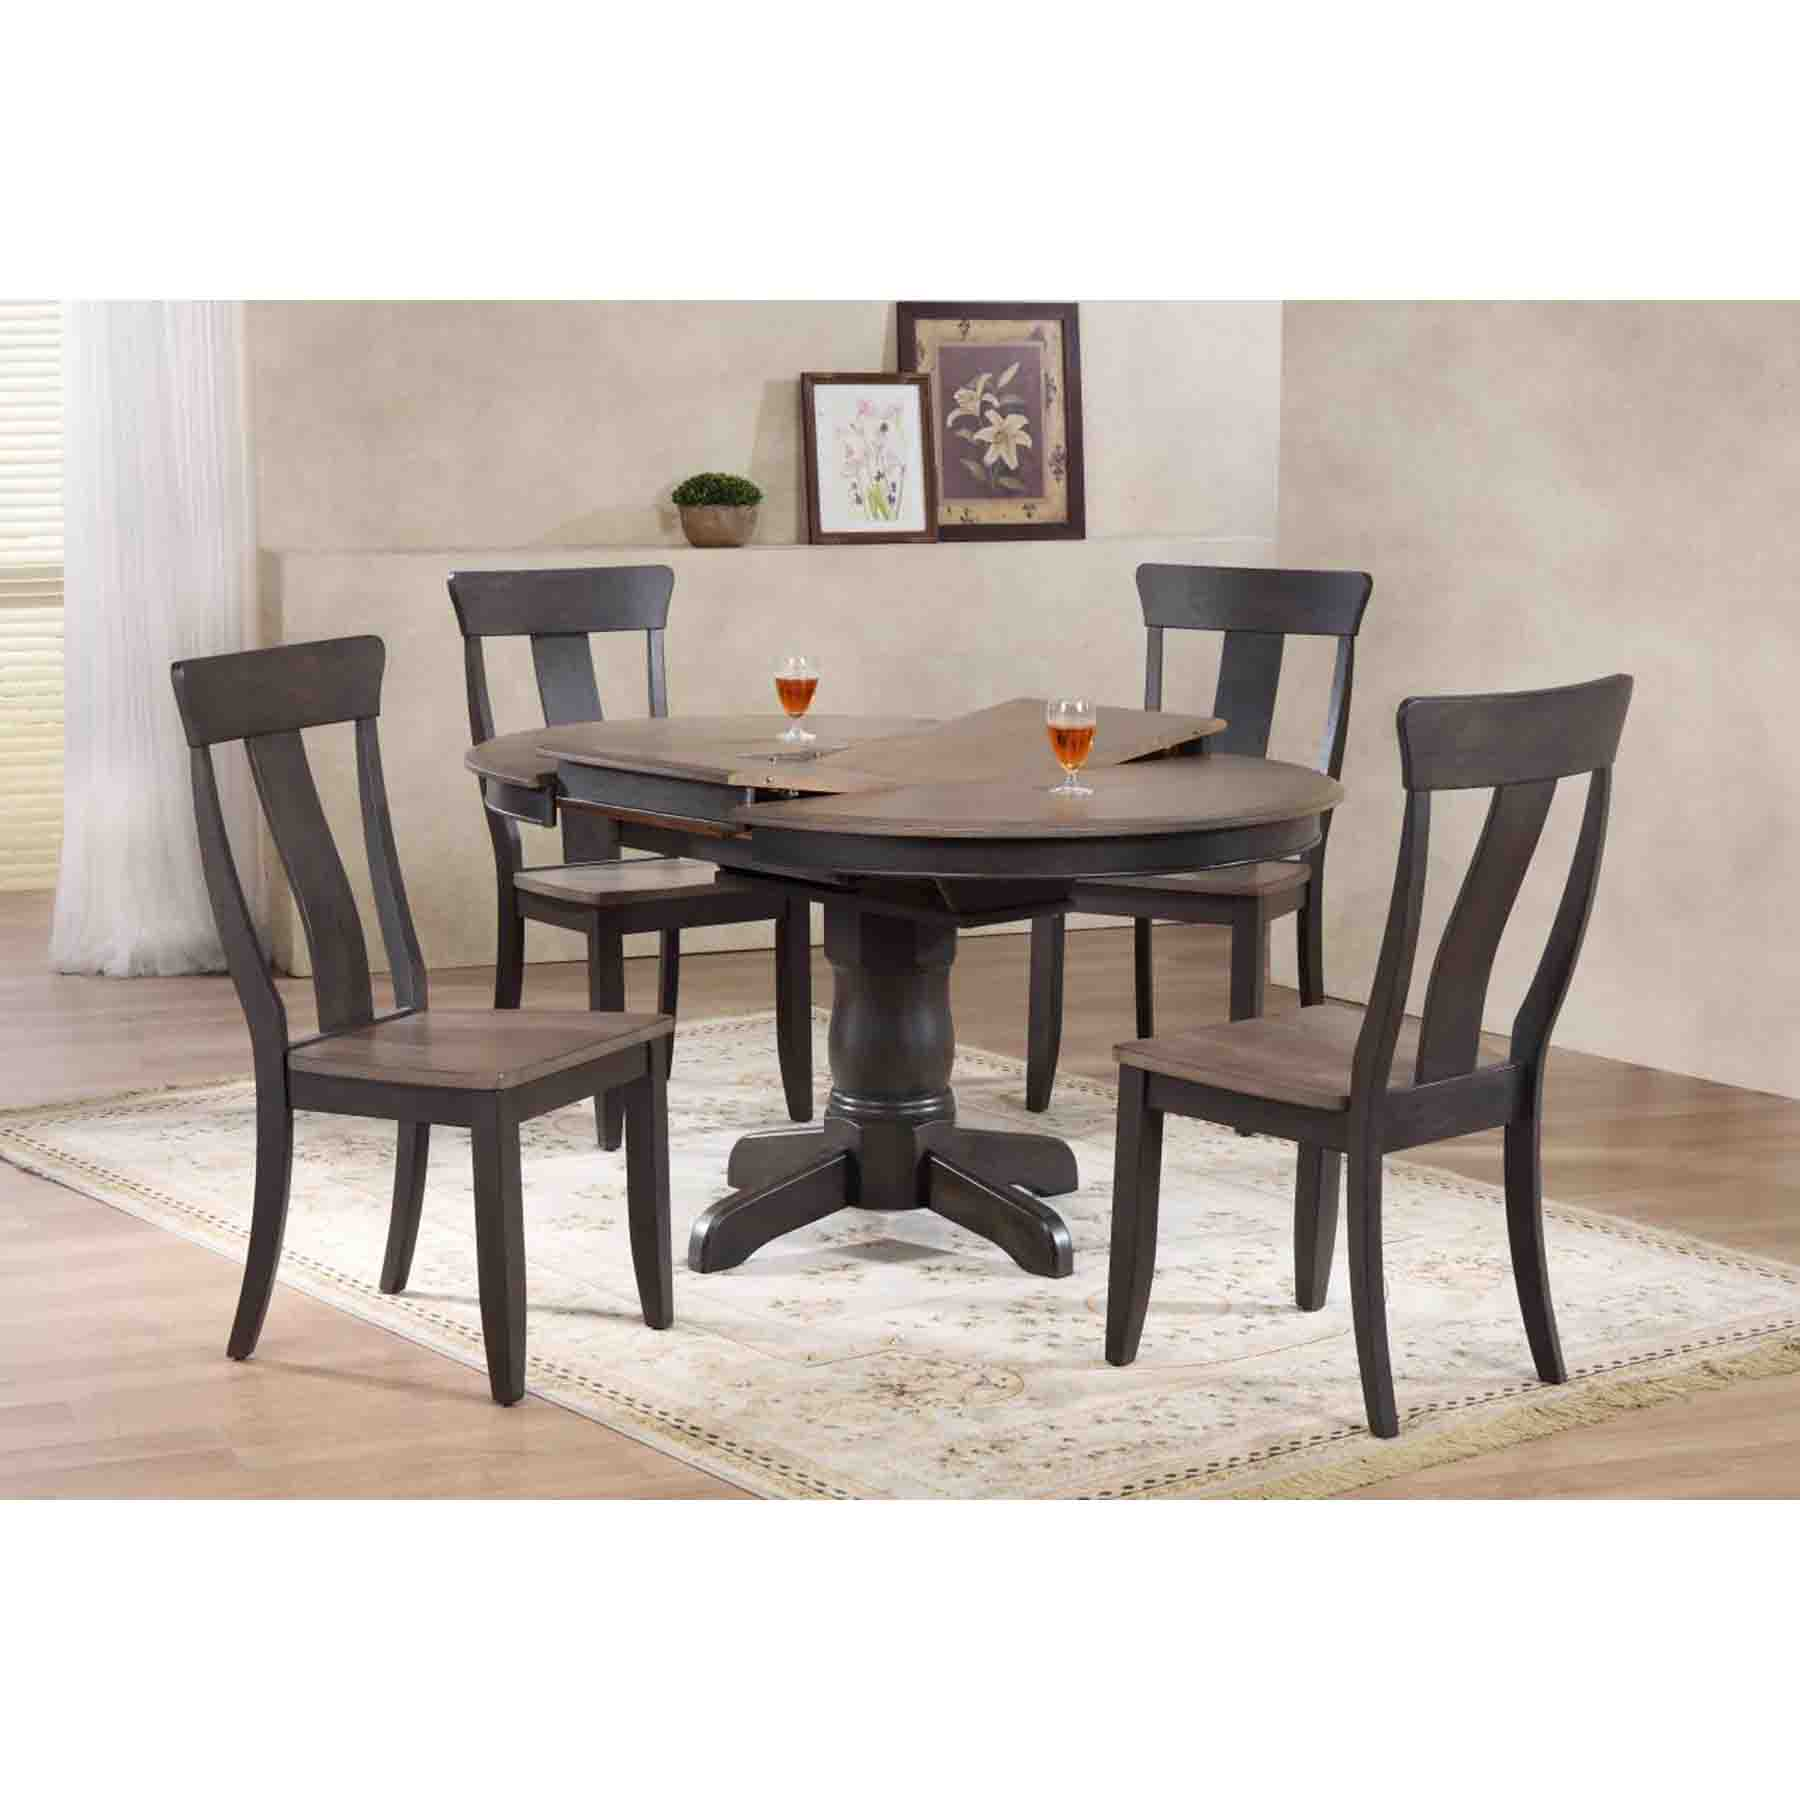 5 Pieces Round Dining Set   Panel Back, Wood Seat, Gray Stone And Black ...